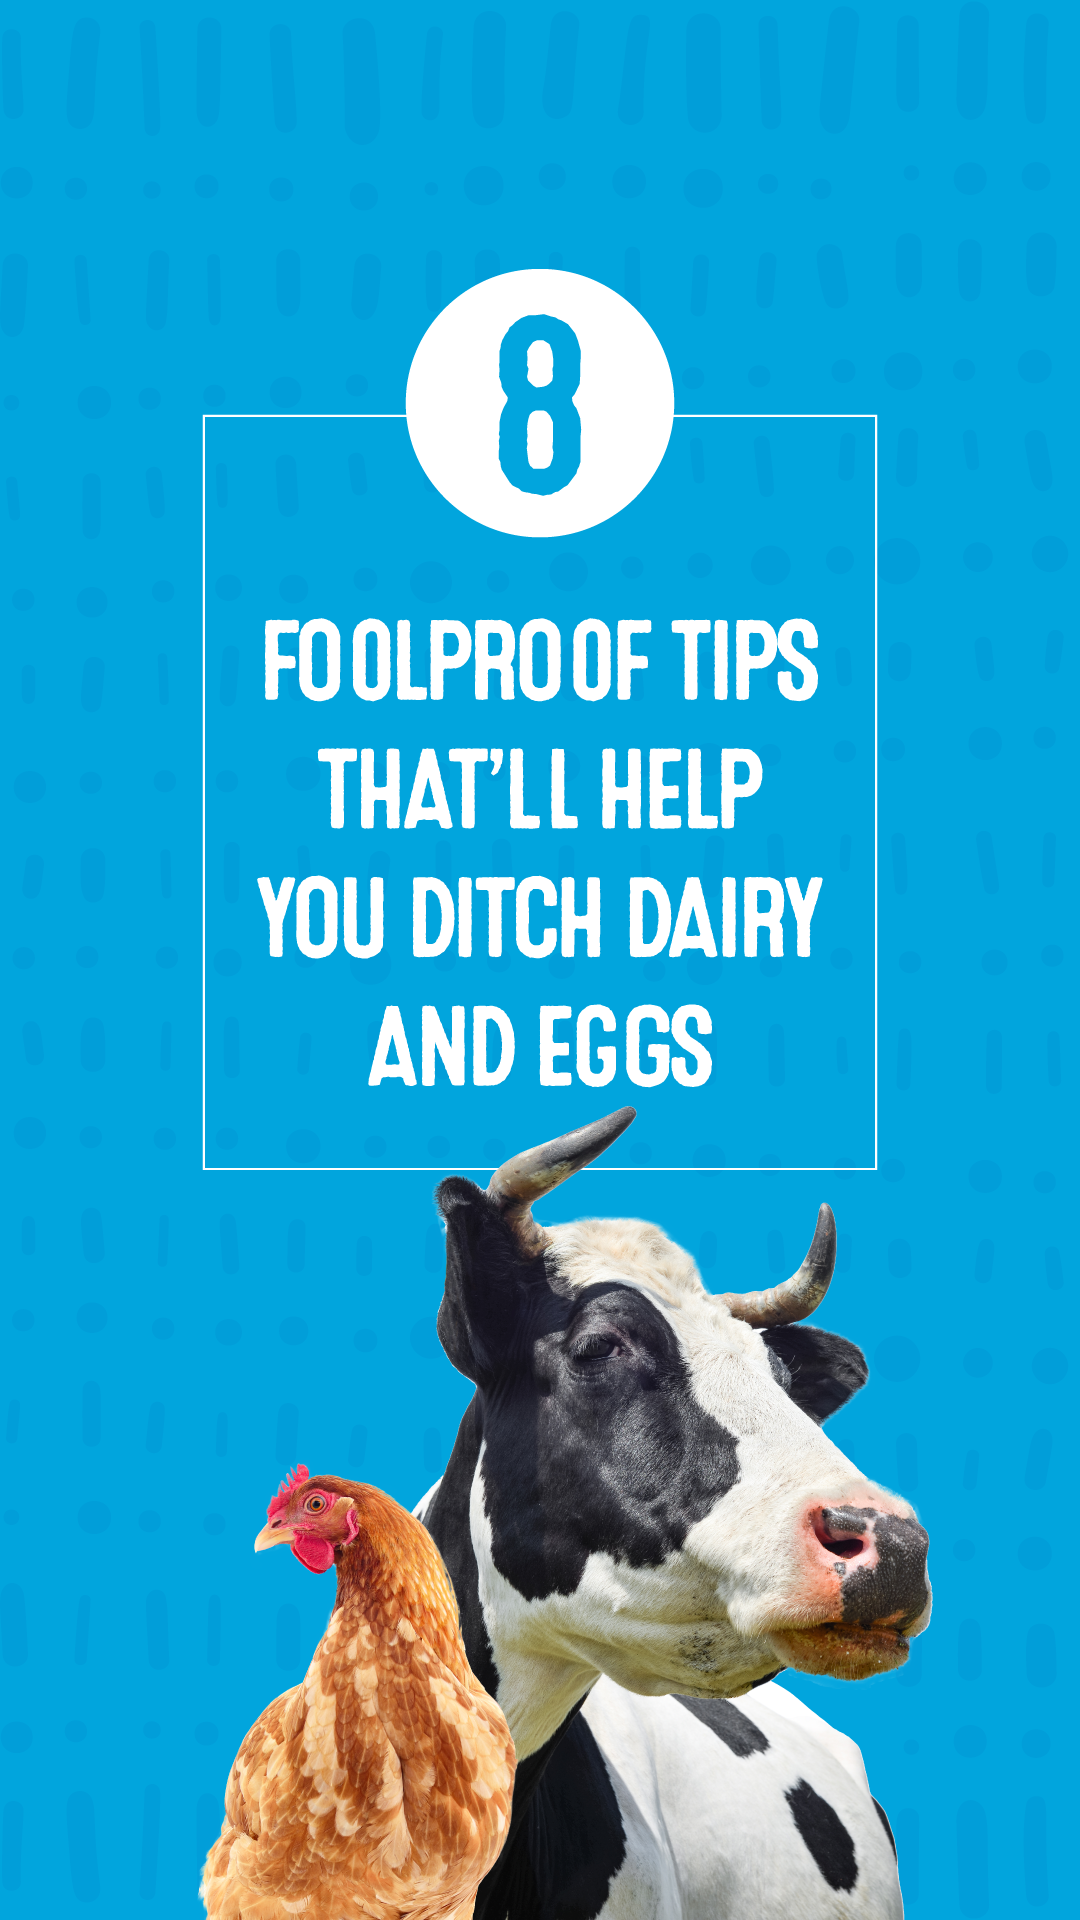 8 Foolproof Tips That'll Help You Ditch Dairy and Eggs